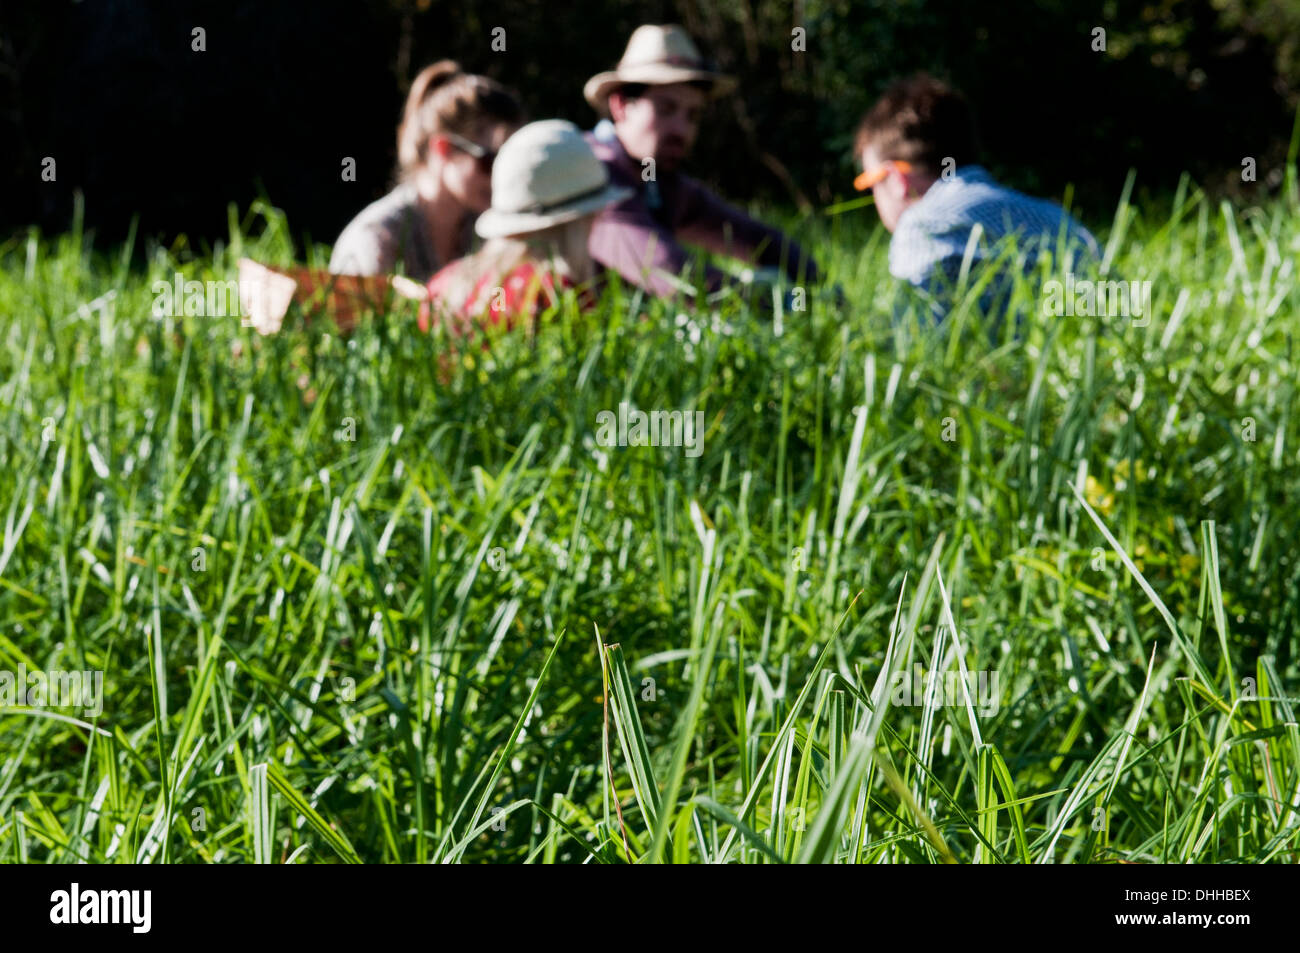 Group of friends having picnic in long grass - Stock Image